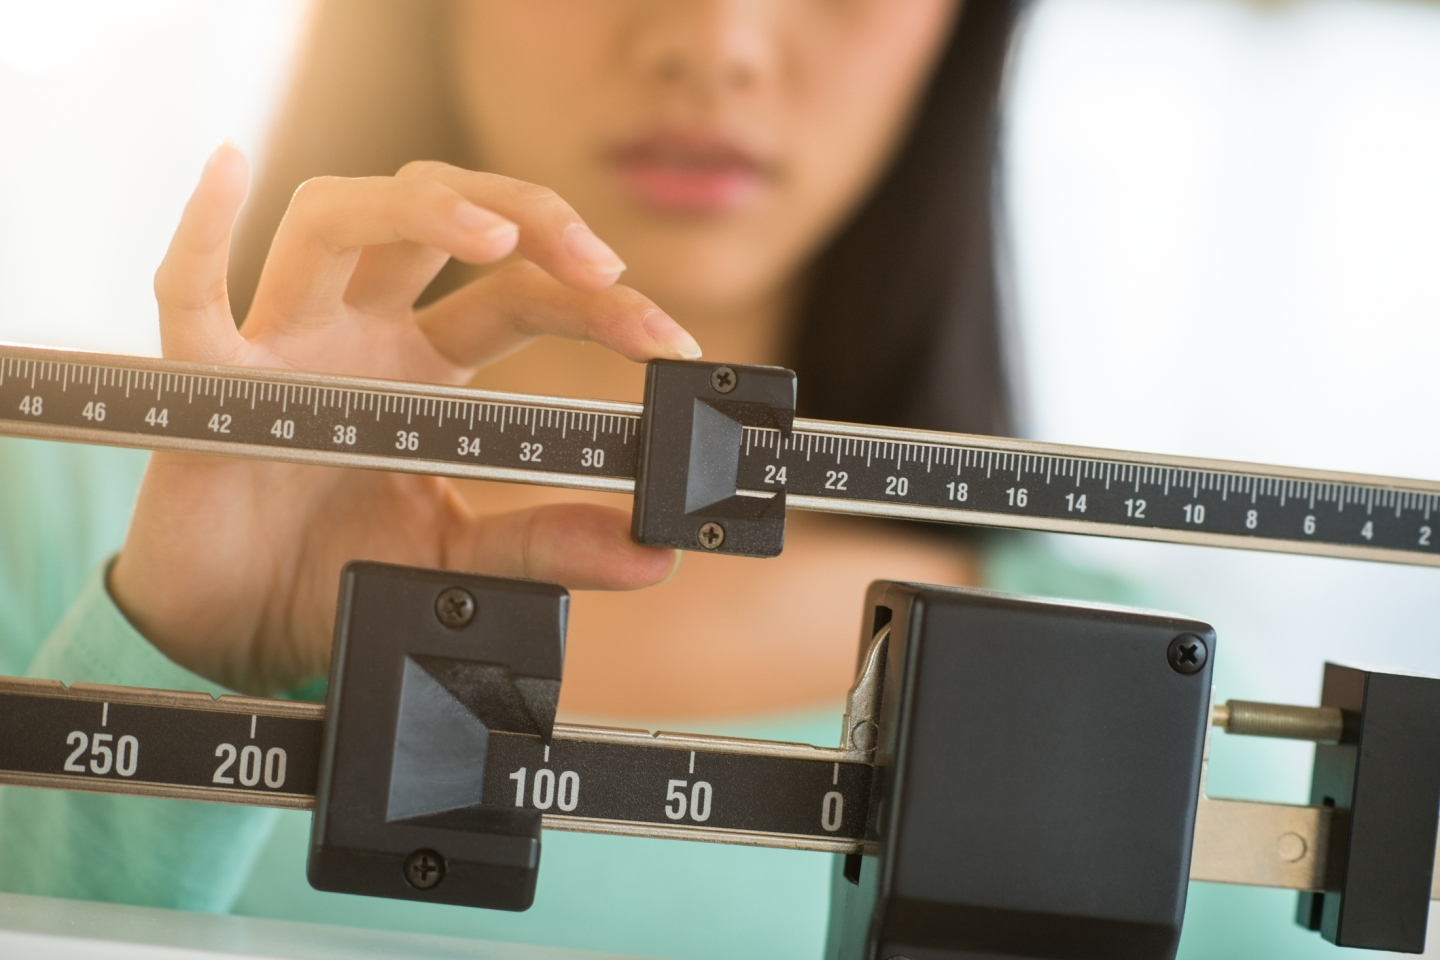 Close-up of a woman adjusting a scale